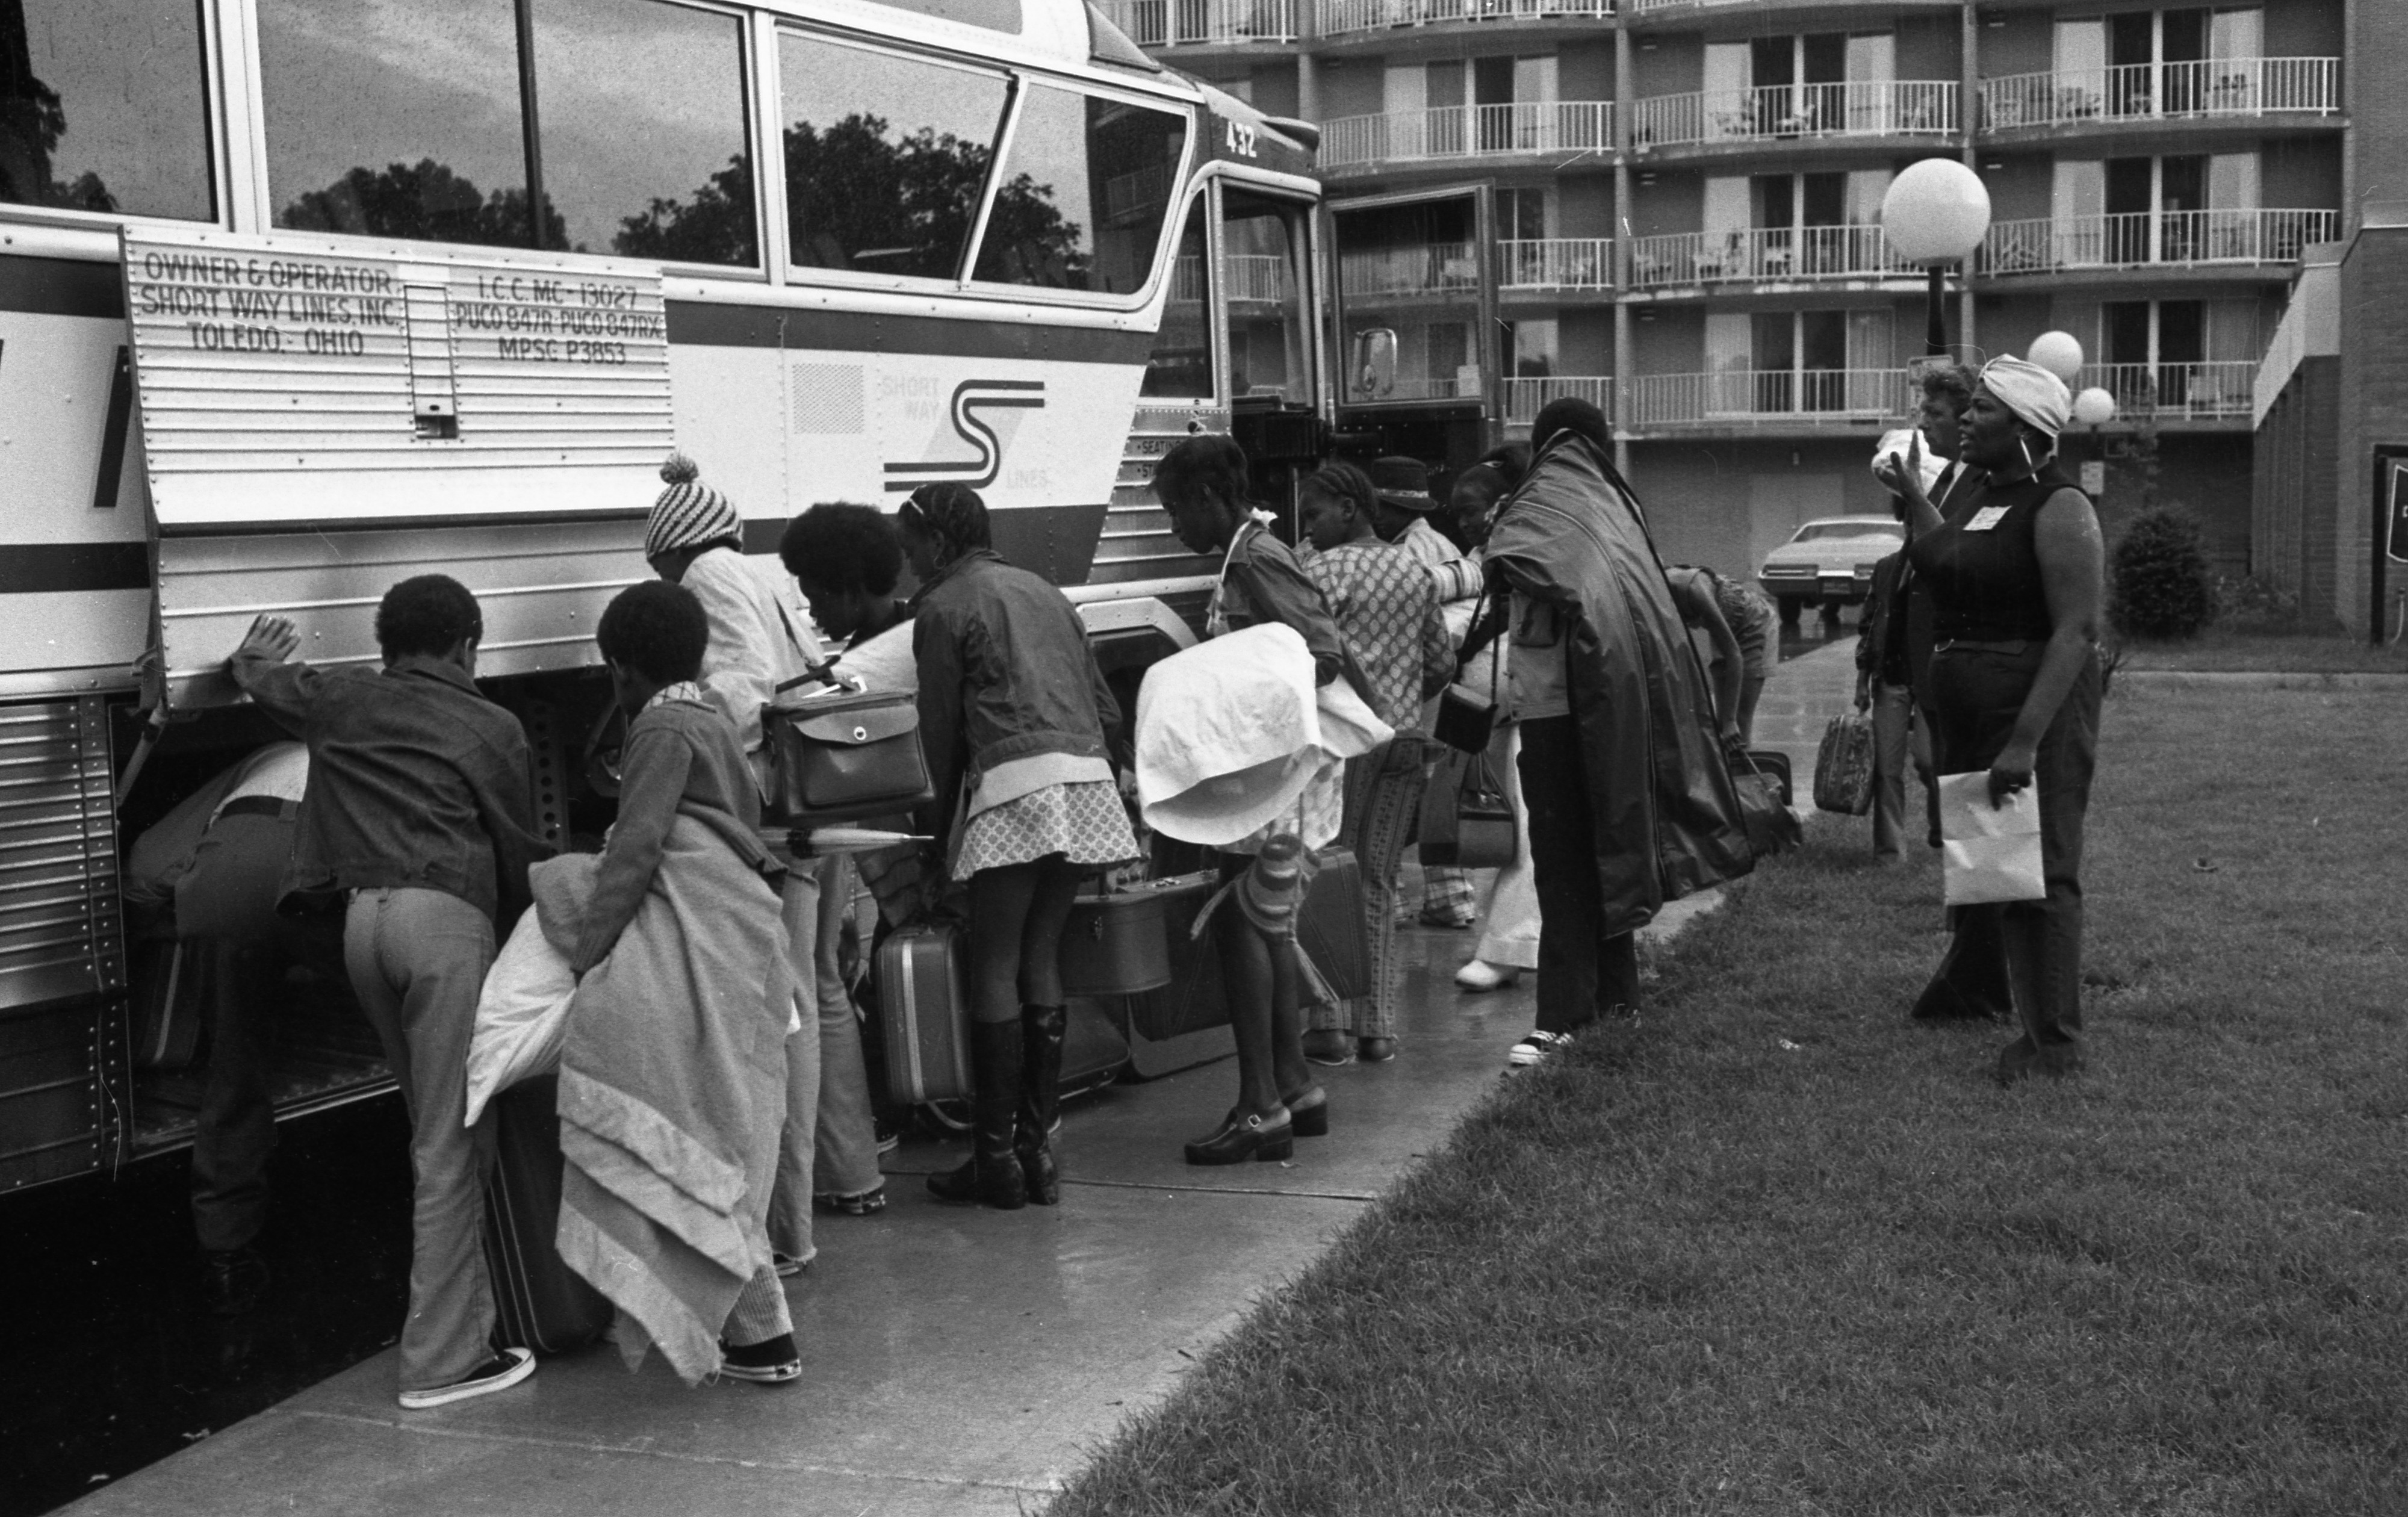 Ann Arbor Public Housing Youth Group Leaves For Week-Long Trip, July 1973 image